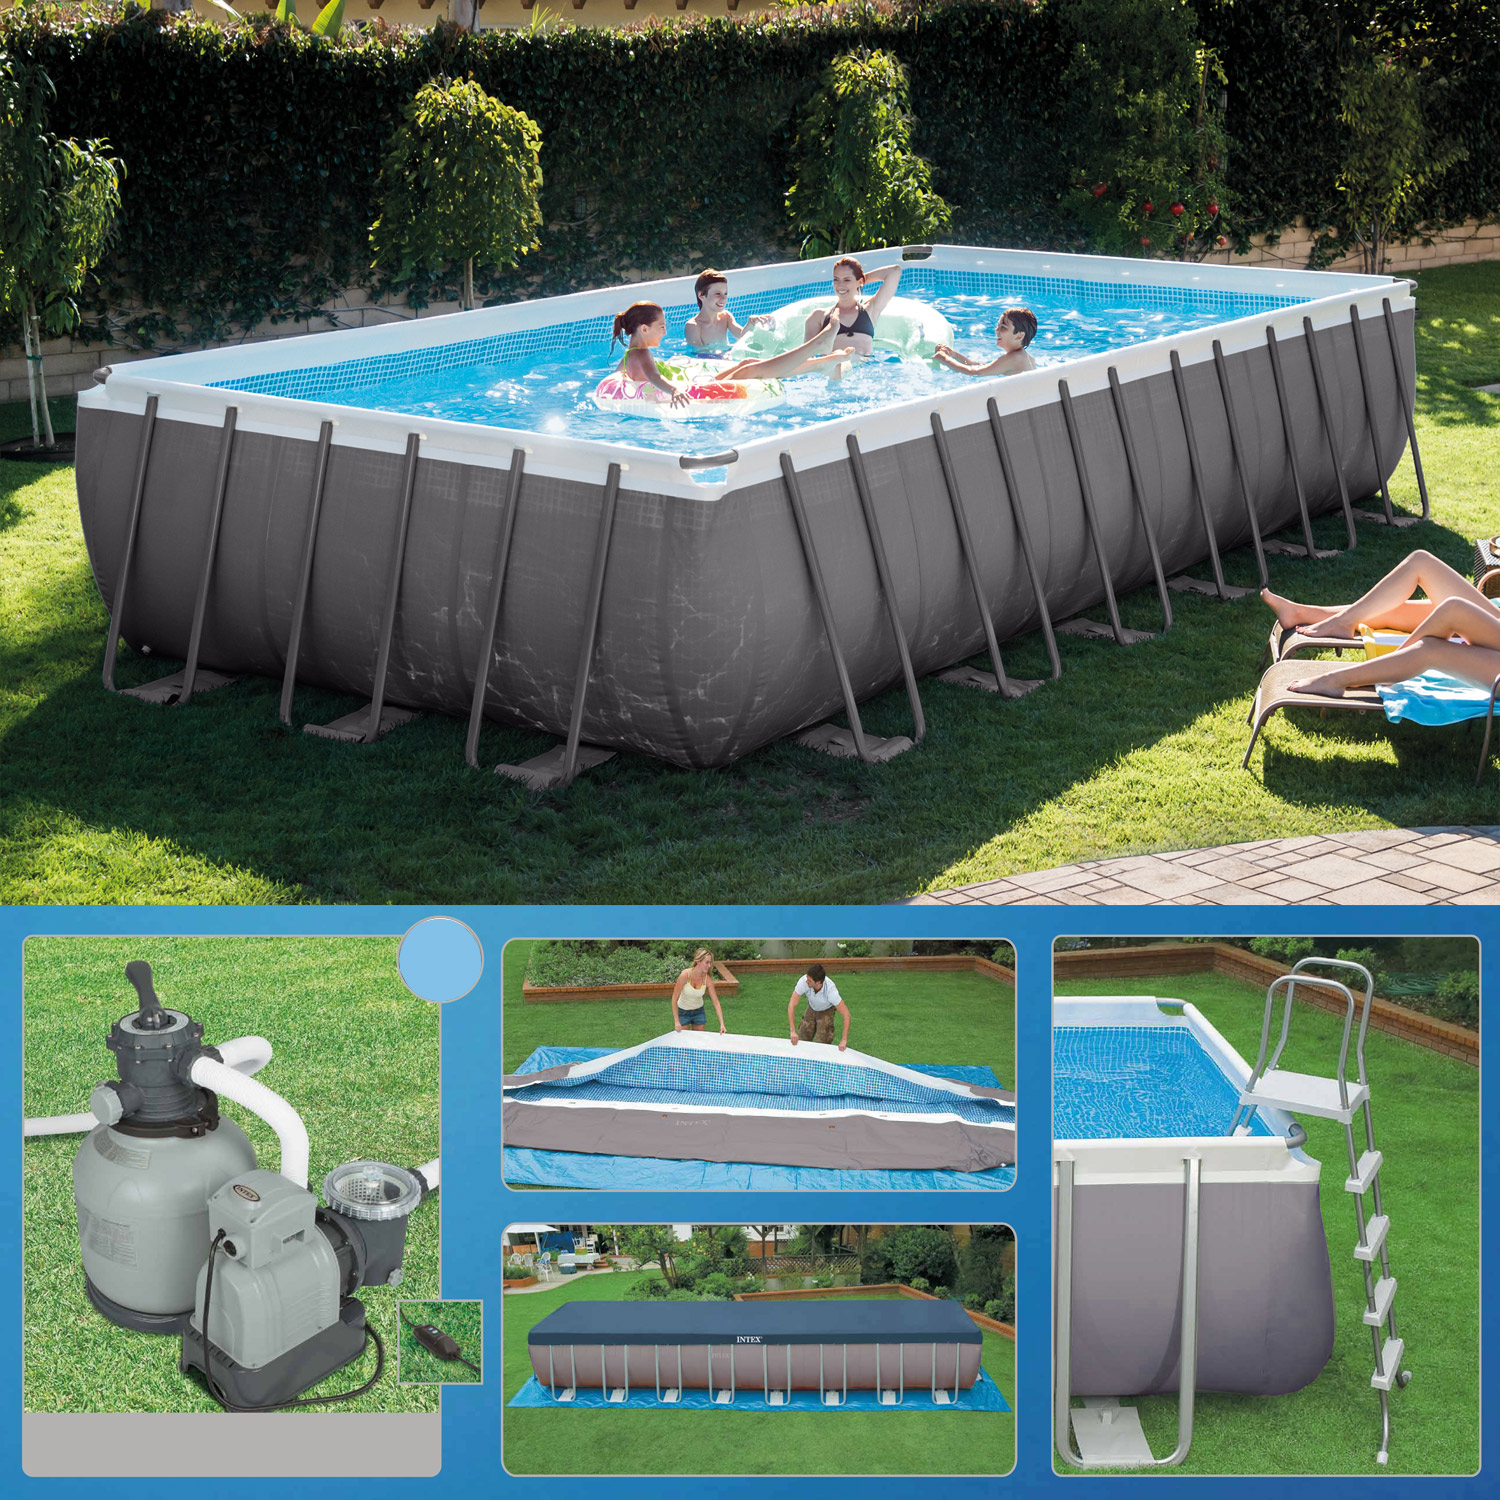 intex 732 x 366 x 132 swimming pool rechteck stahlbecken